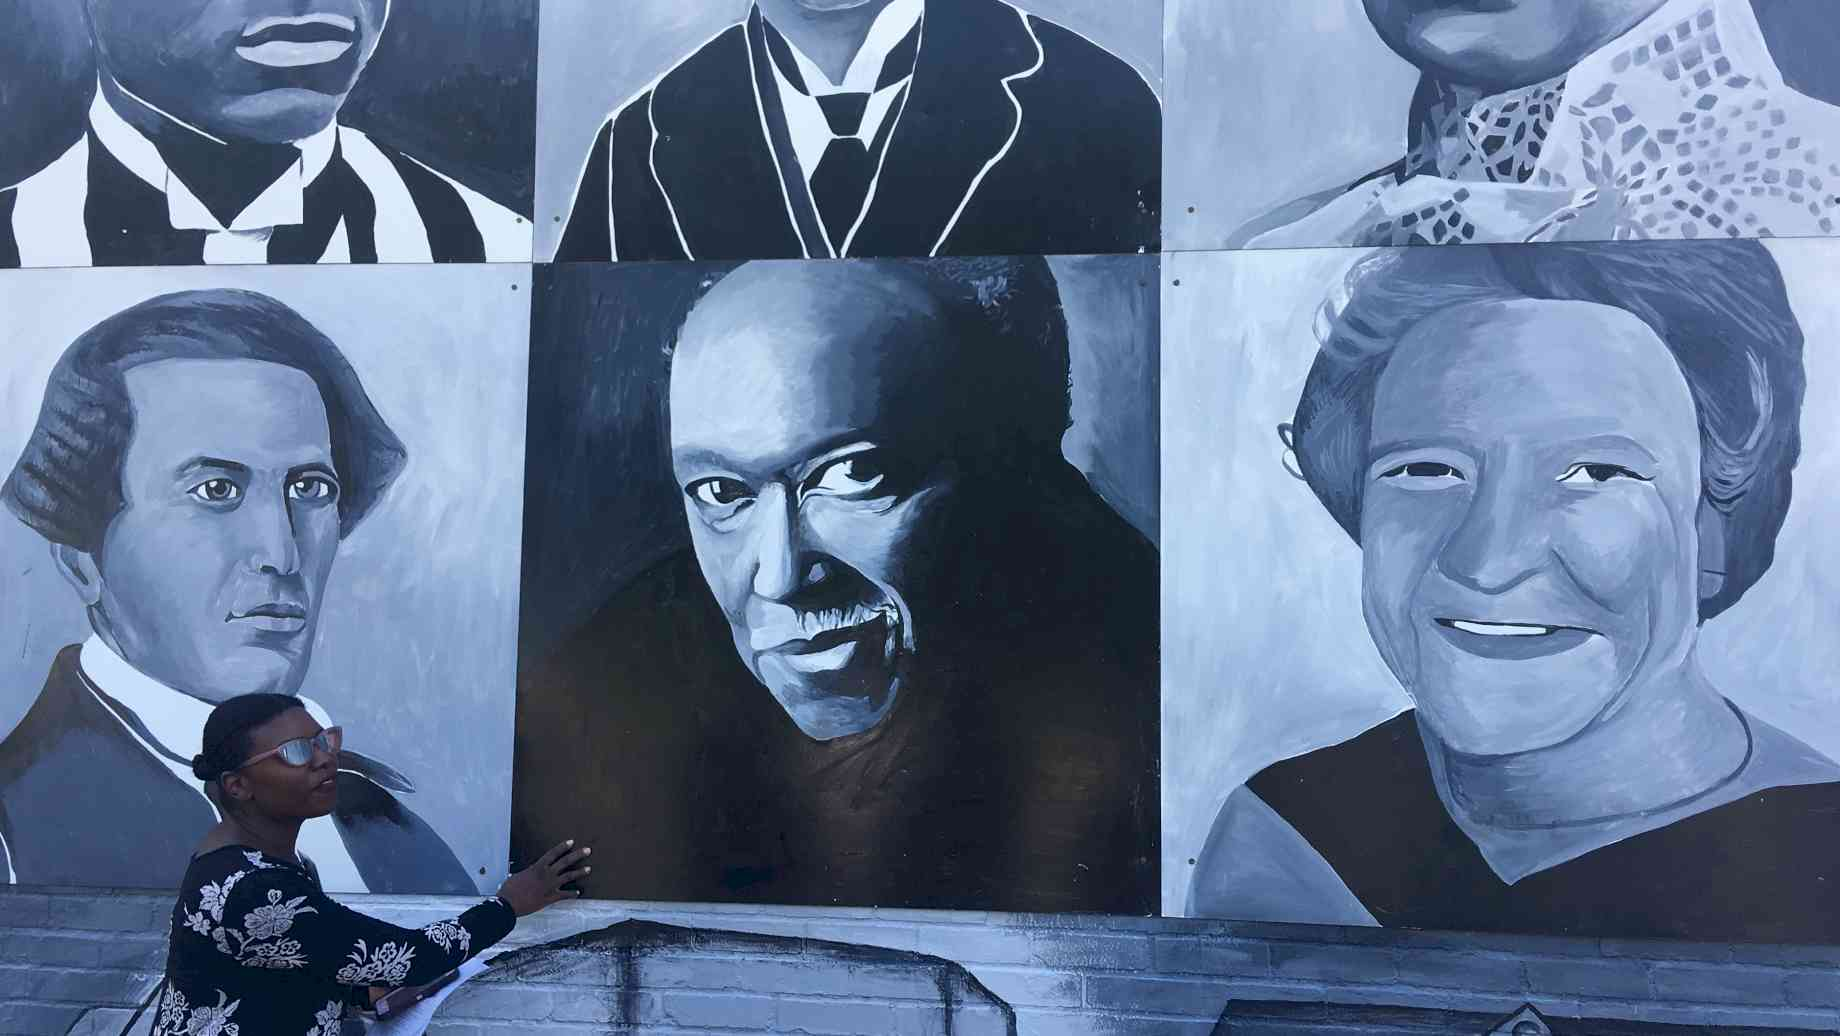 Mural of historic figures in Lexington, Kentucky